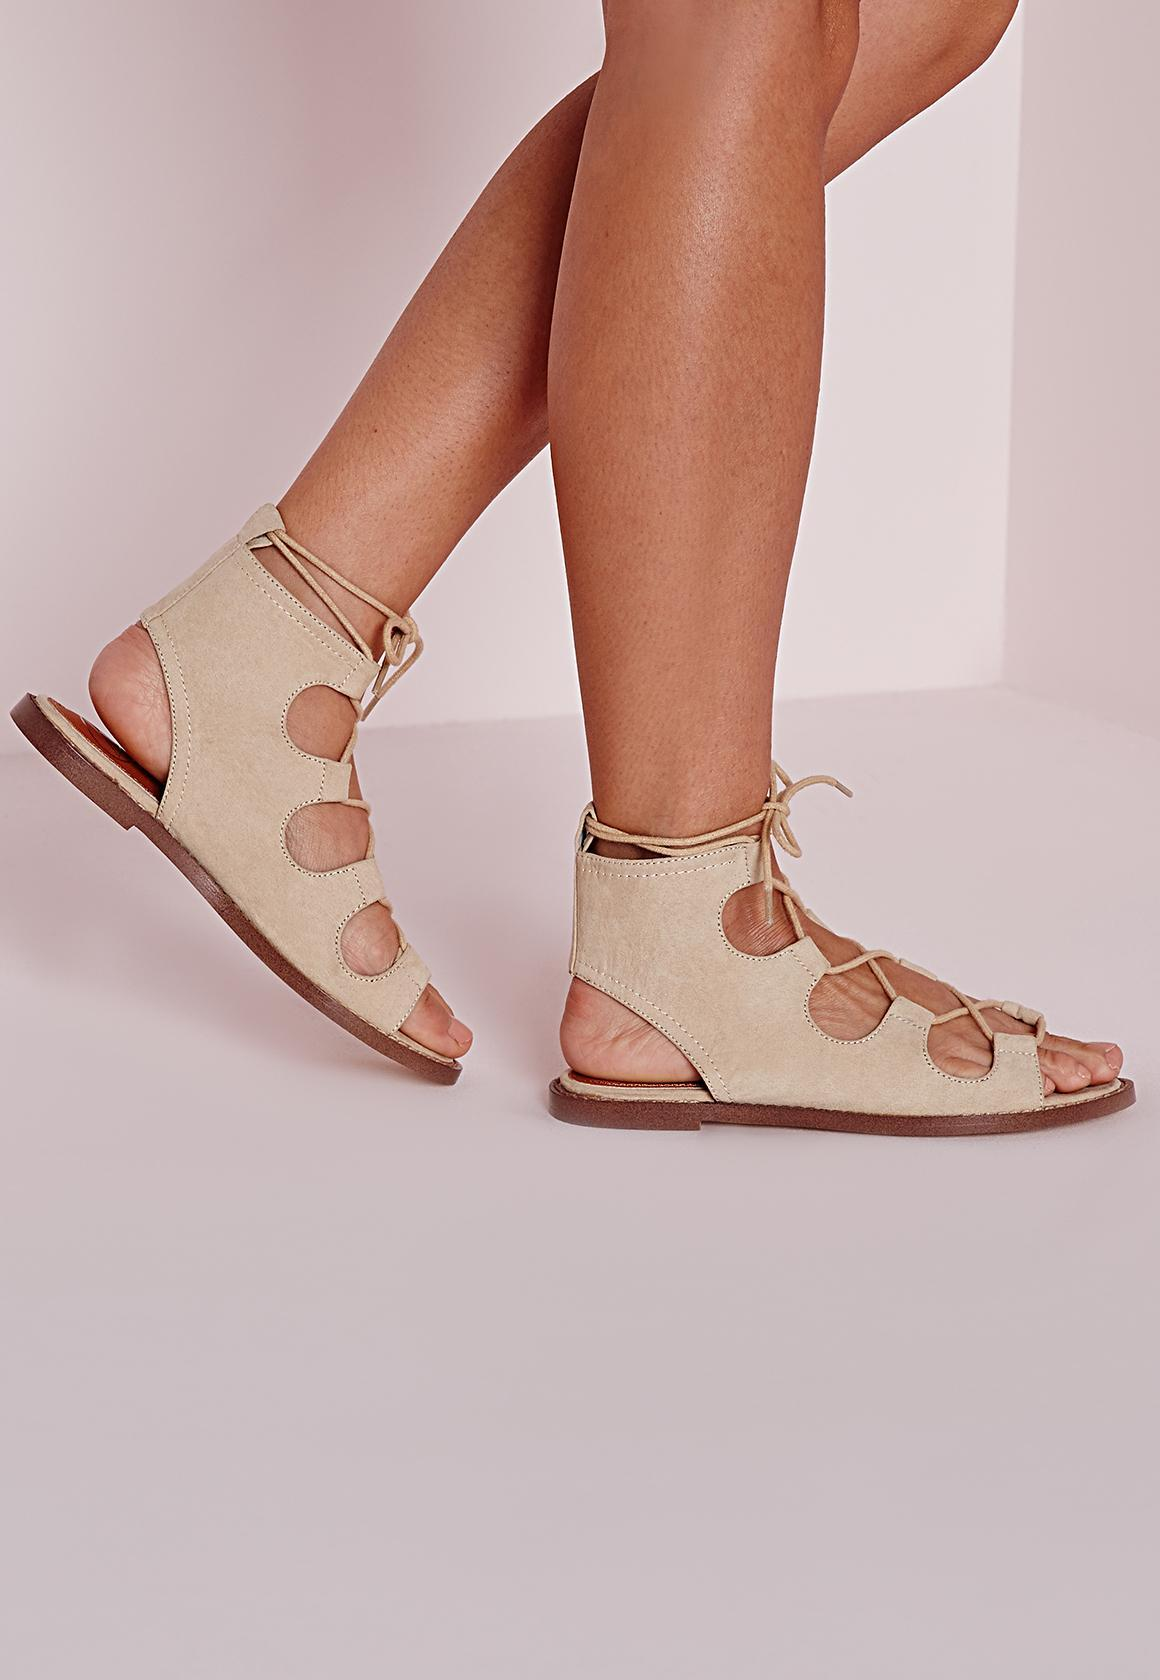 Missguided Nude Rounded Strap Gladiator Heeled Sandals in